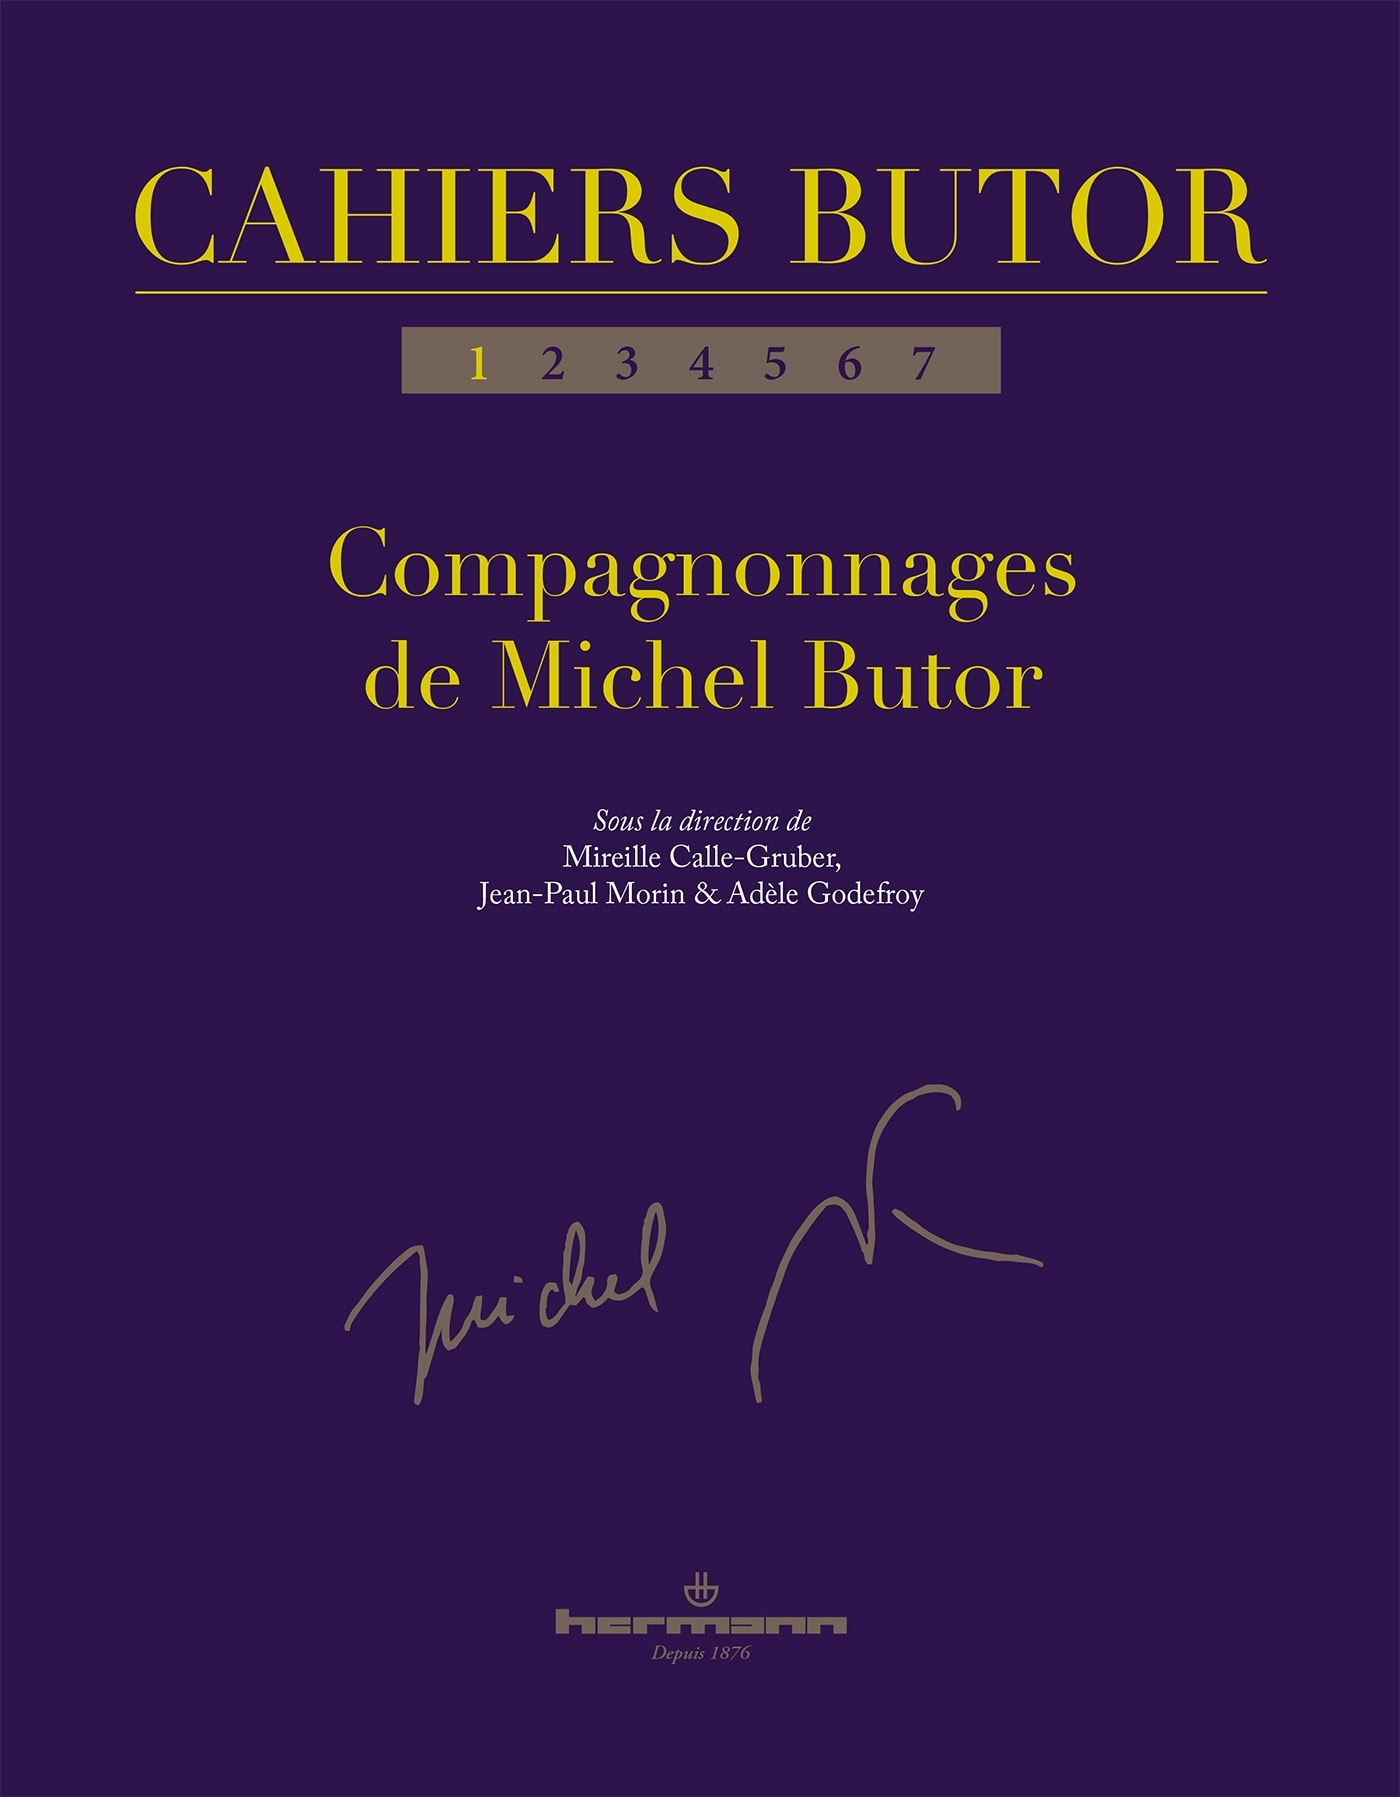 CAHIERS BUTOR N  1 - COMPAGNONNAGES DE MICHEL BUTOR